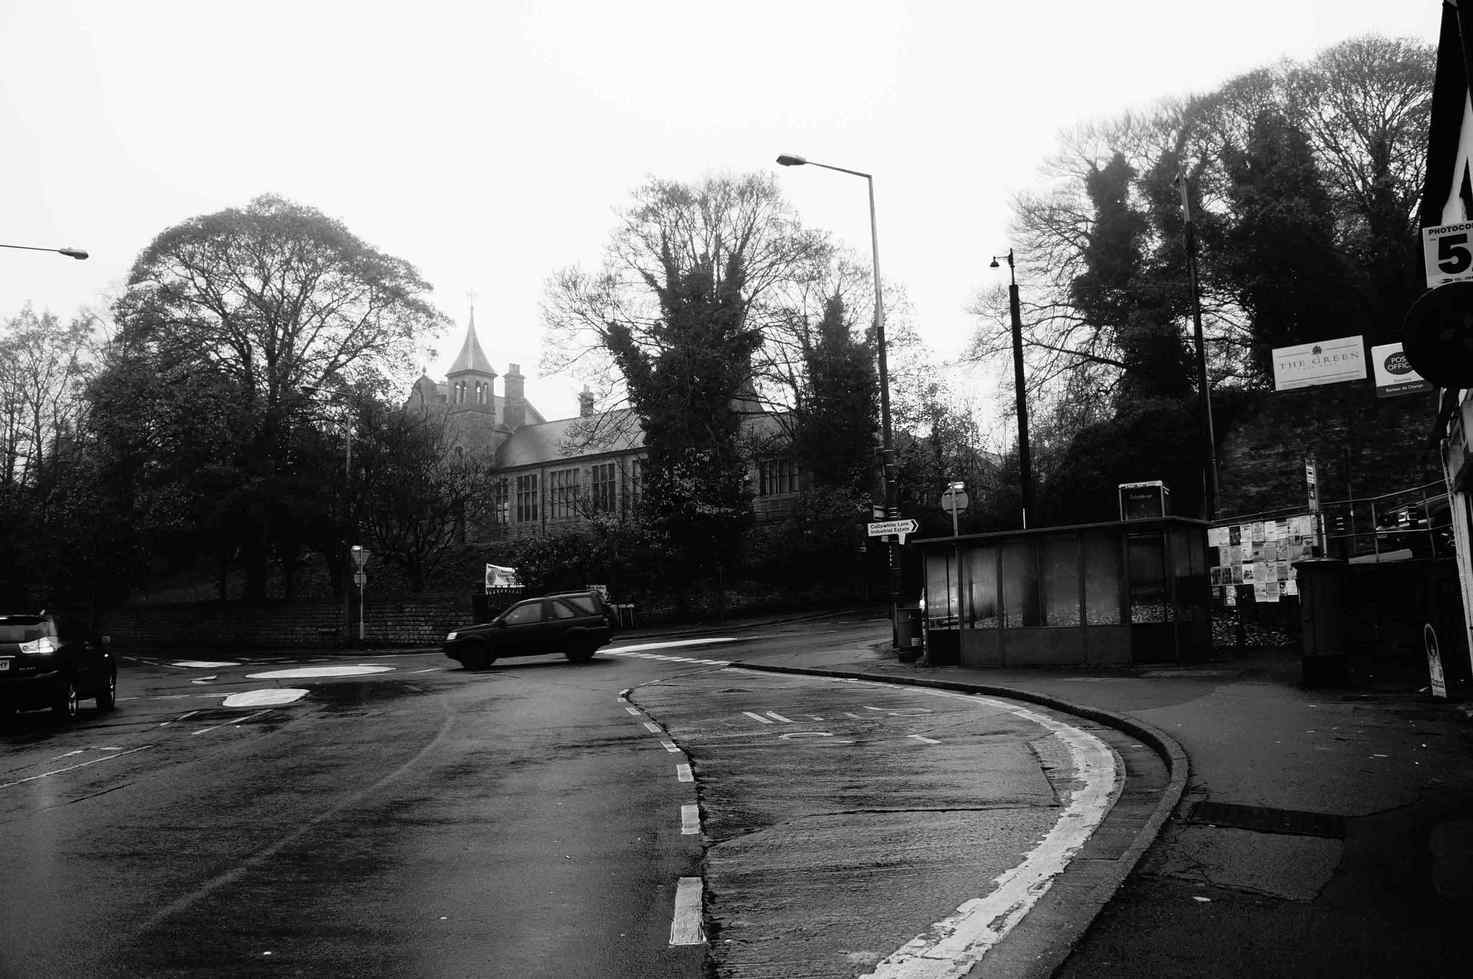 Rainy town junction